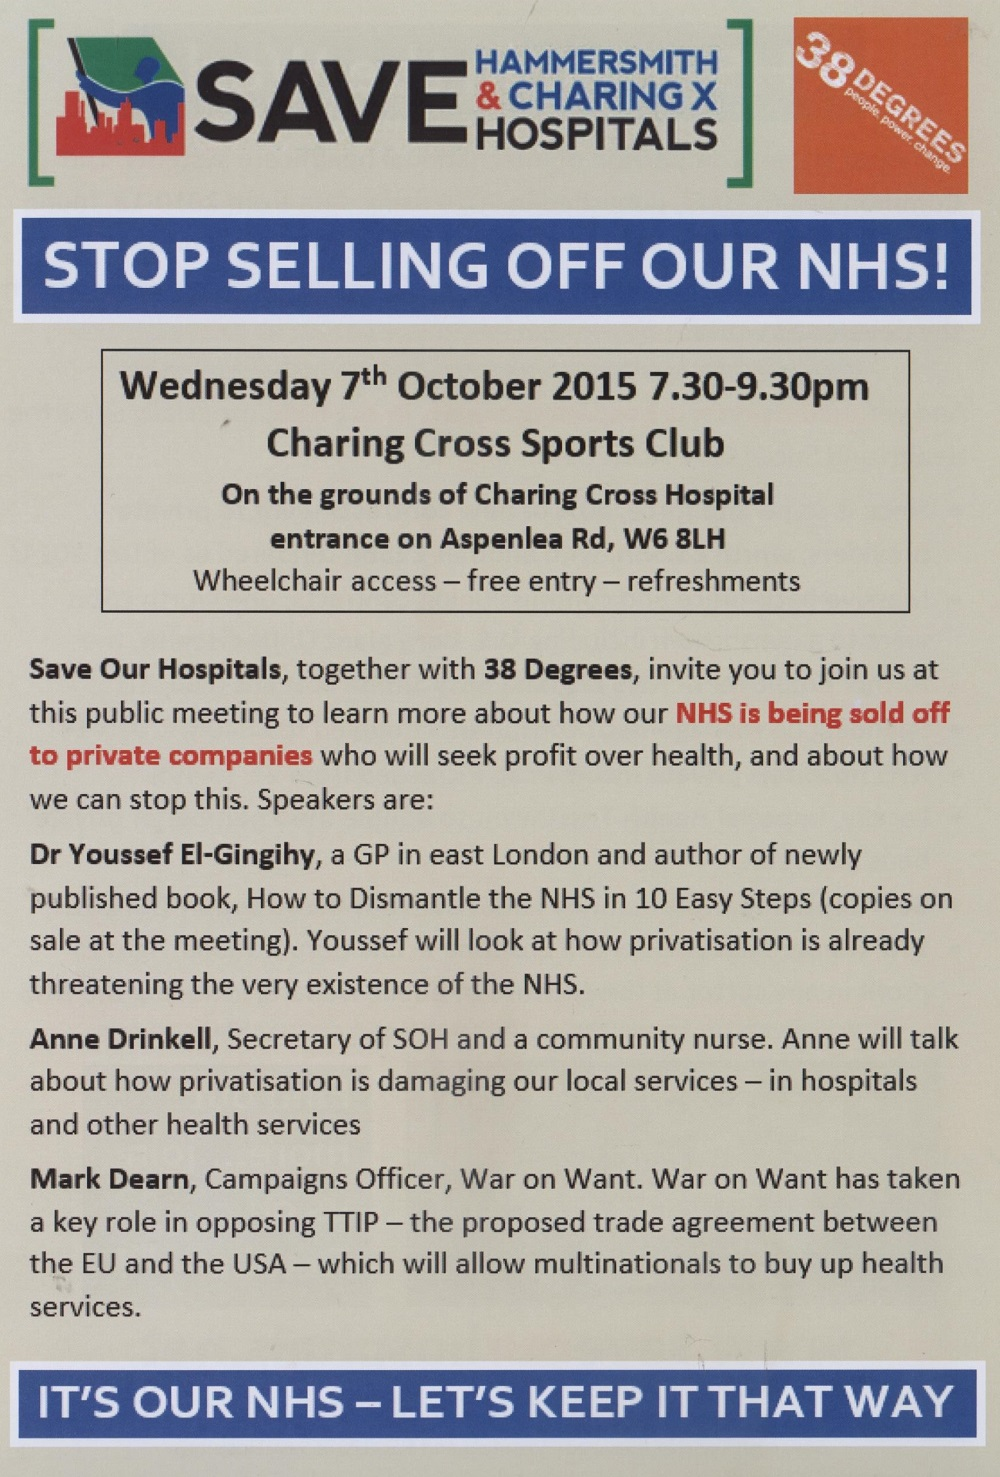 Save Our Hospitals, together with 38 Degrees, invite you to join us at this public meeting to learn about how the NHS is being sold off to private companies who will seek profit over health and about how we can stop this...